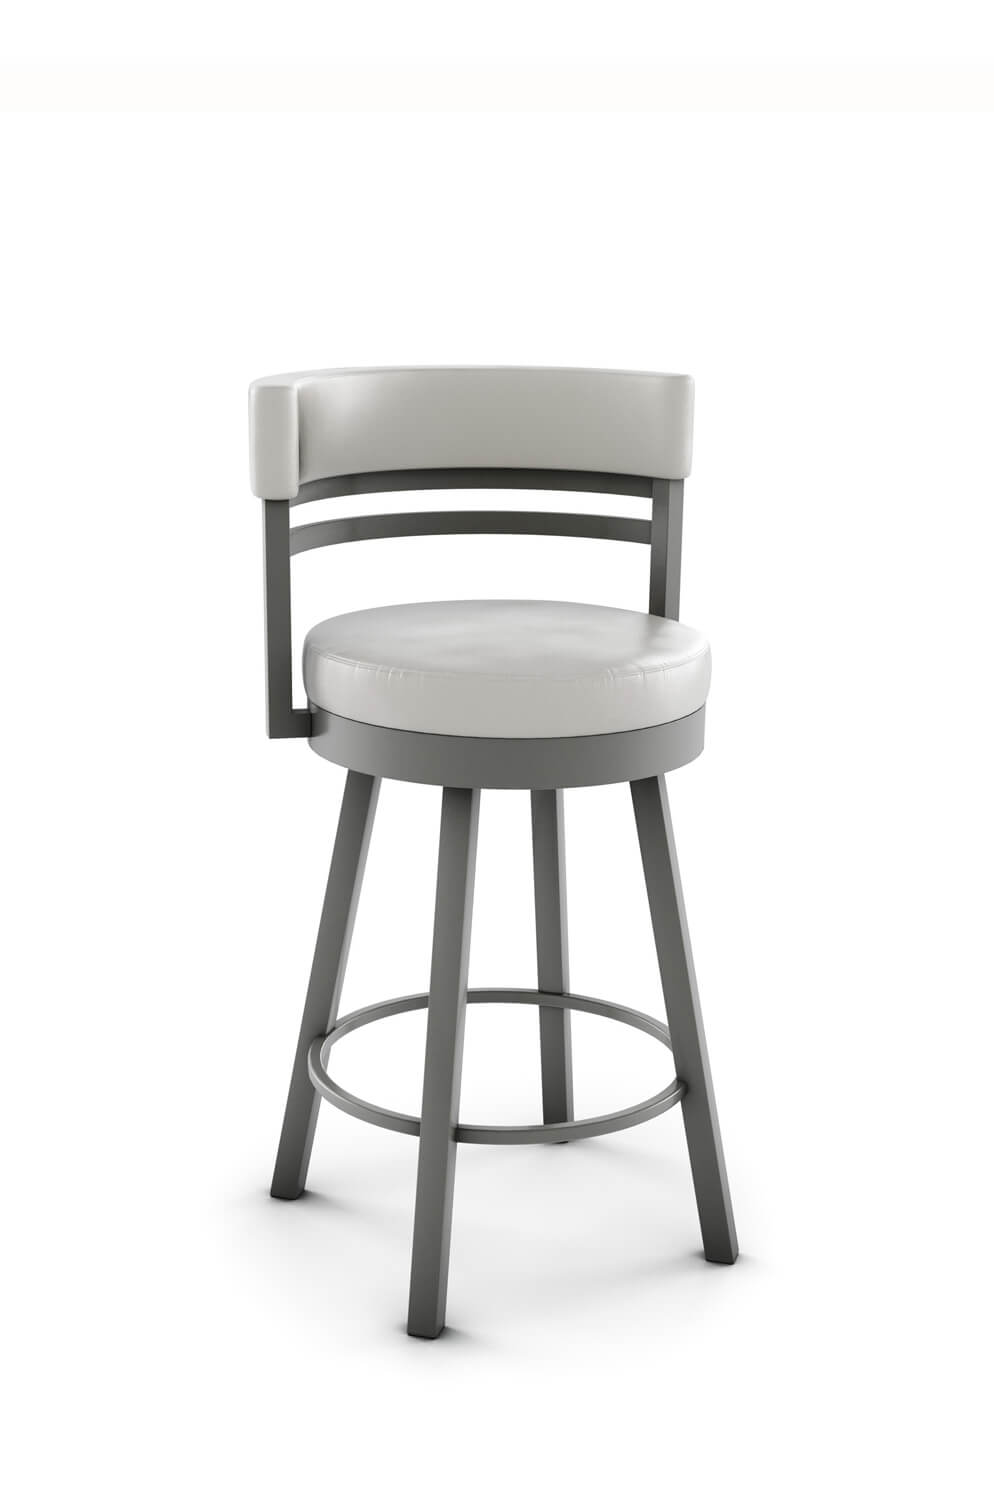 Brilliant Ronny Swivel Stool Uwap Interior Chair Design Uwaporg